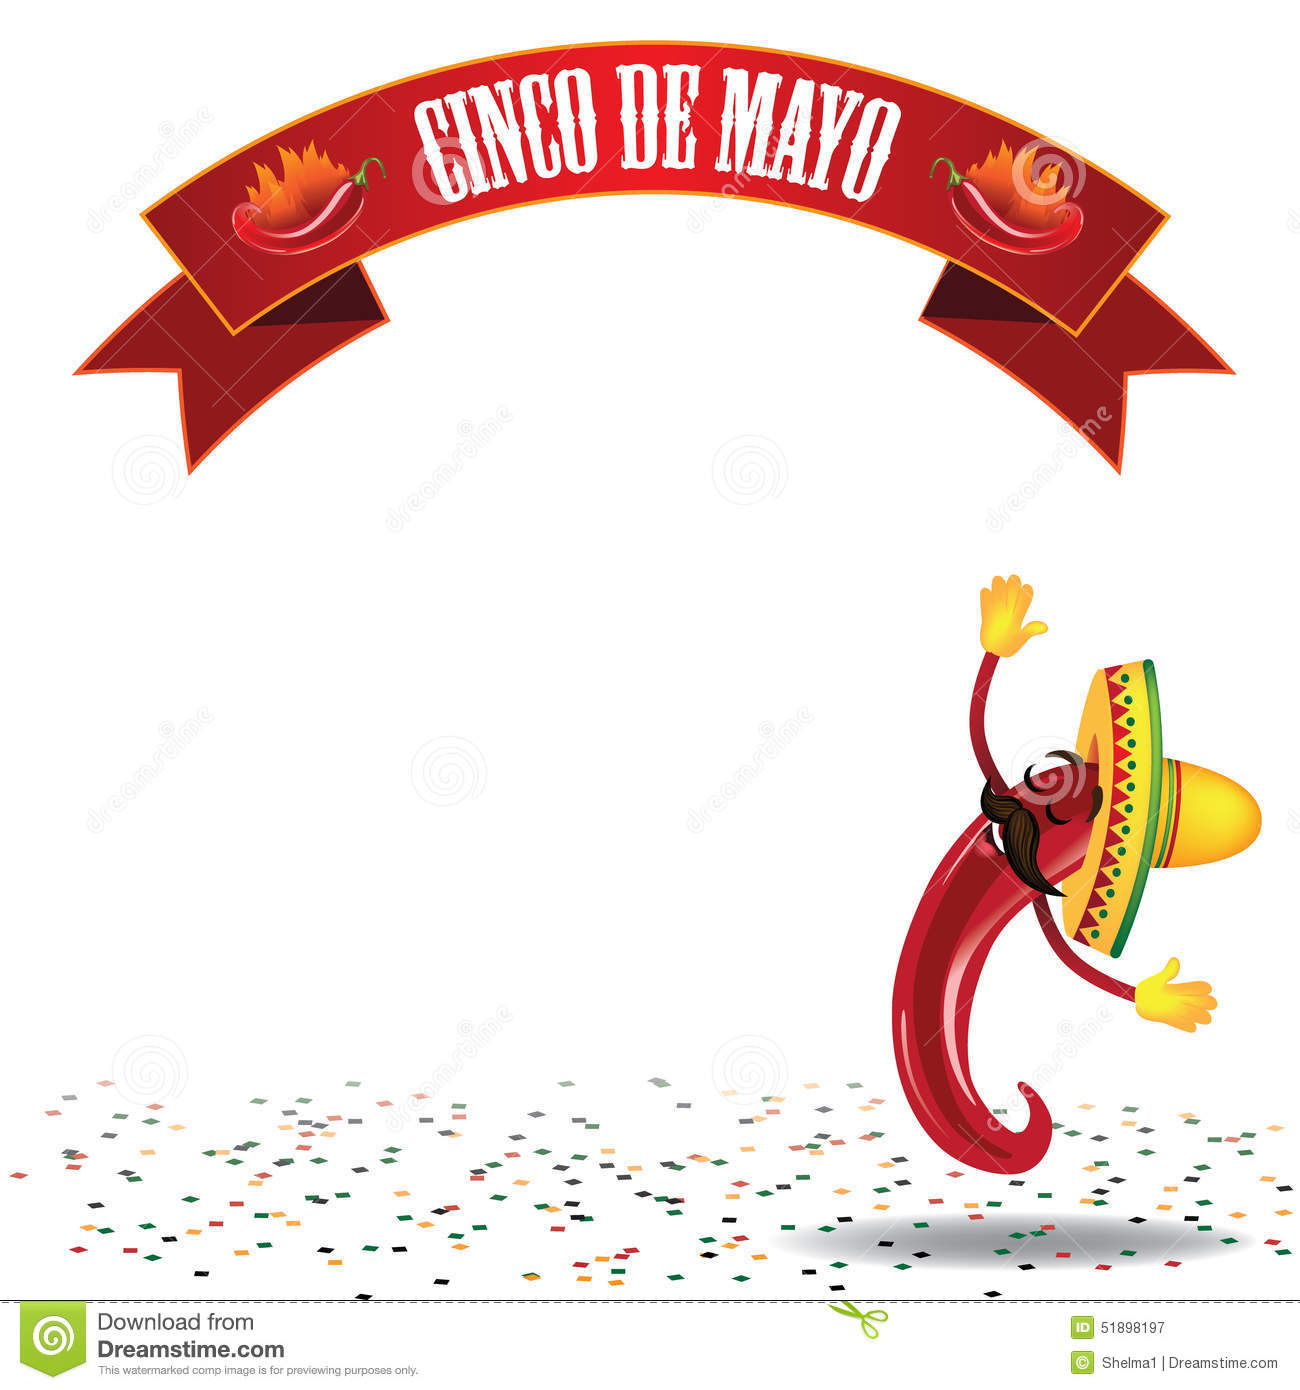 Cinco De Mayo Dancing Hot Pepper Background EPS10 Vector